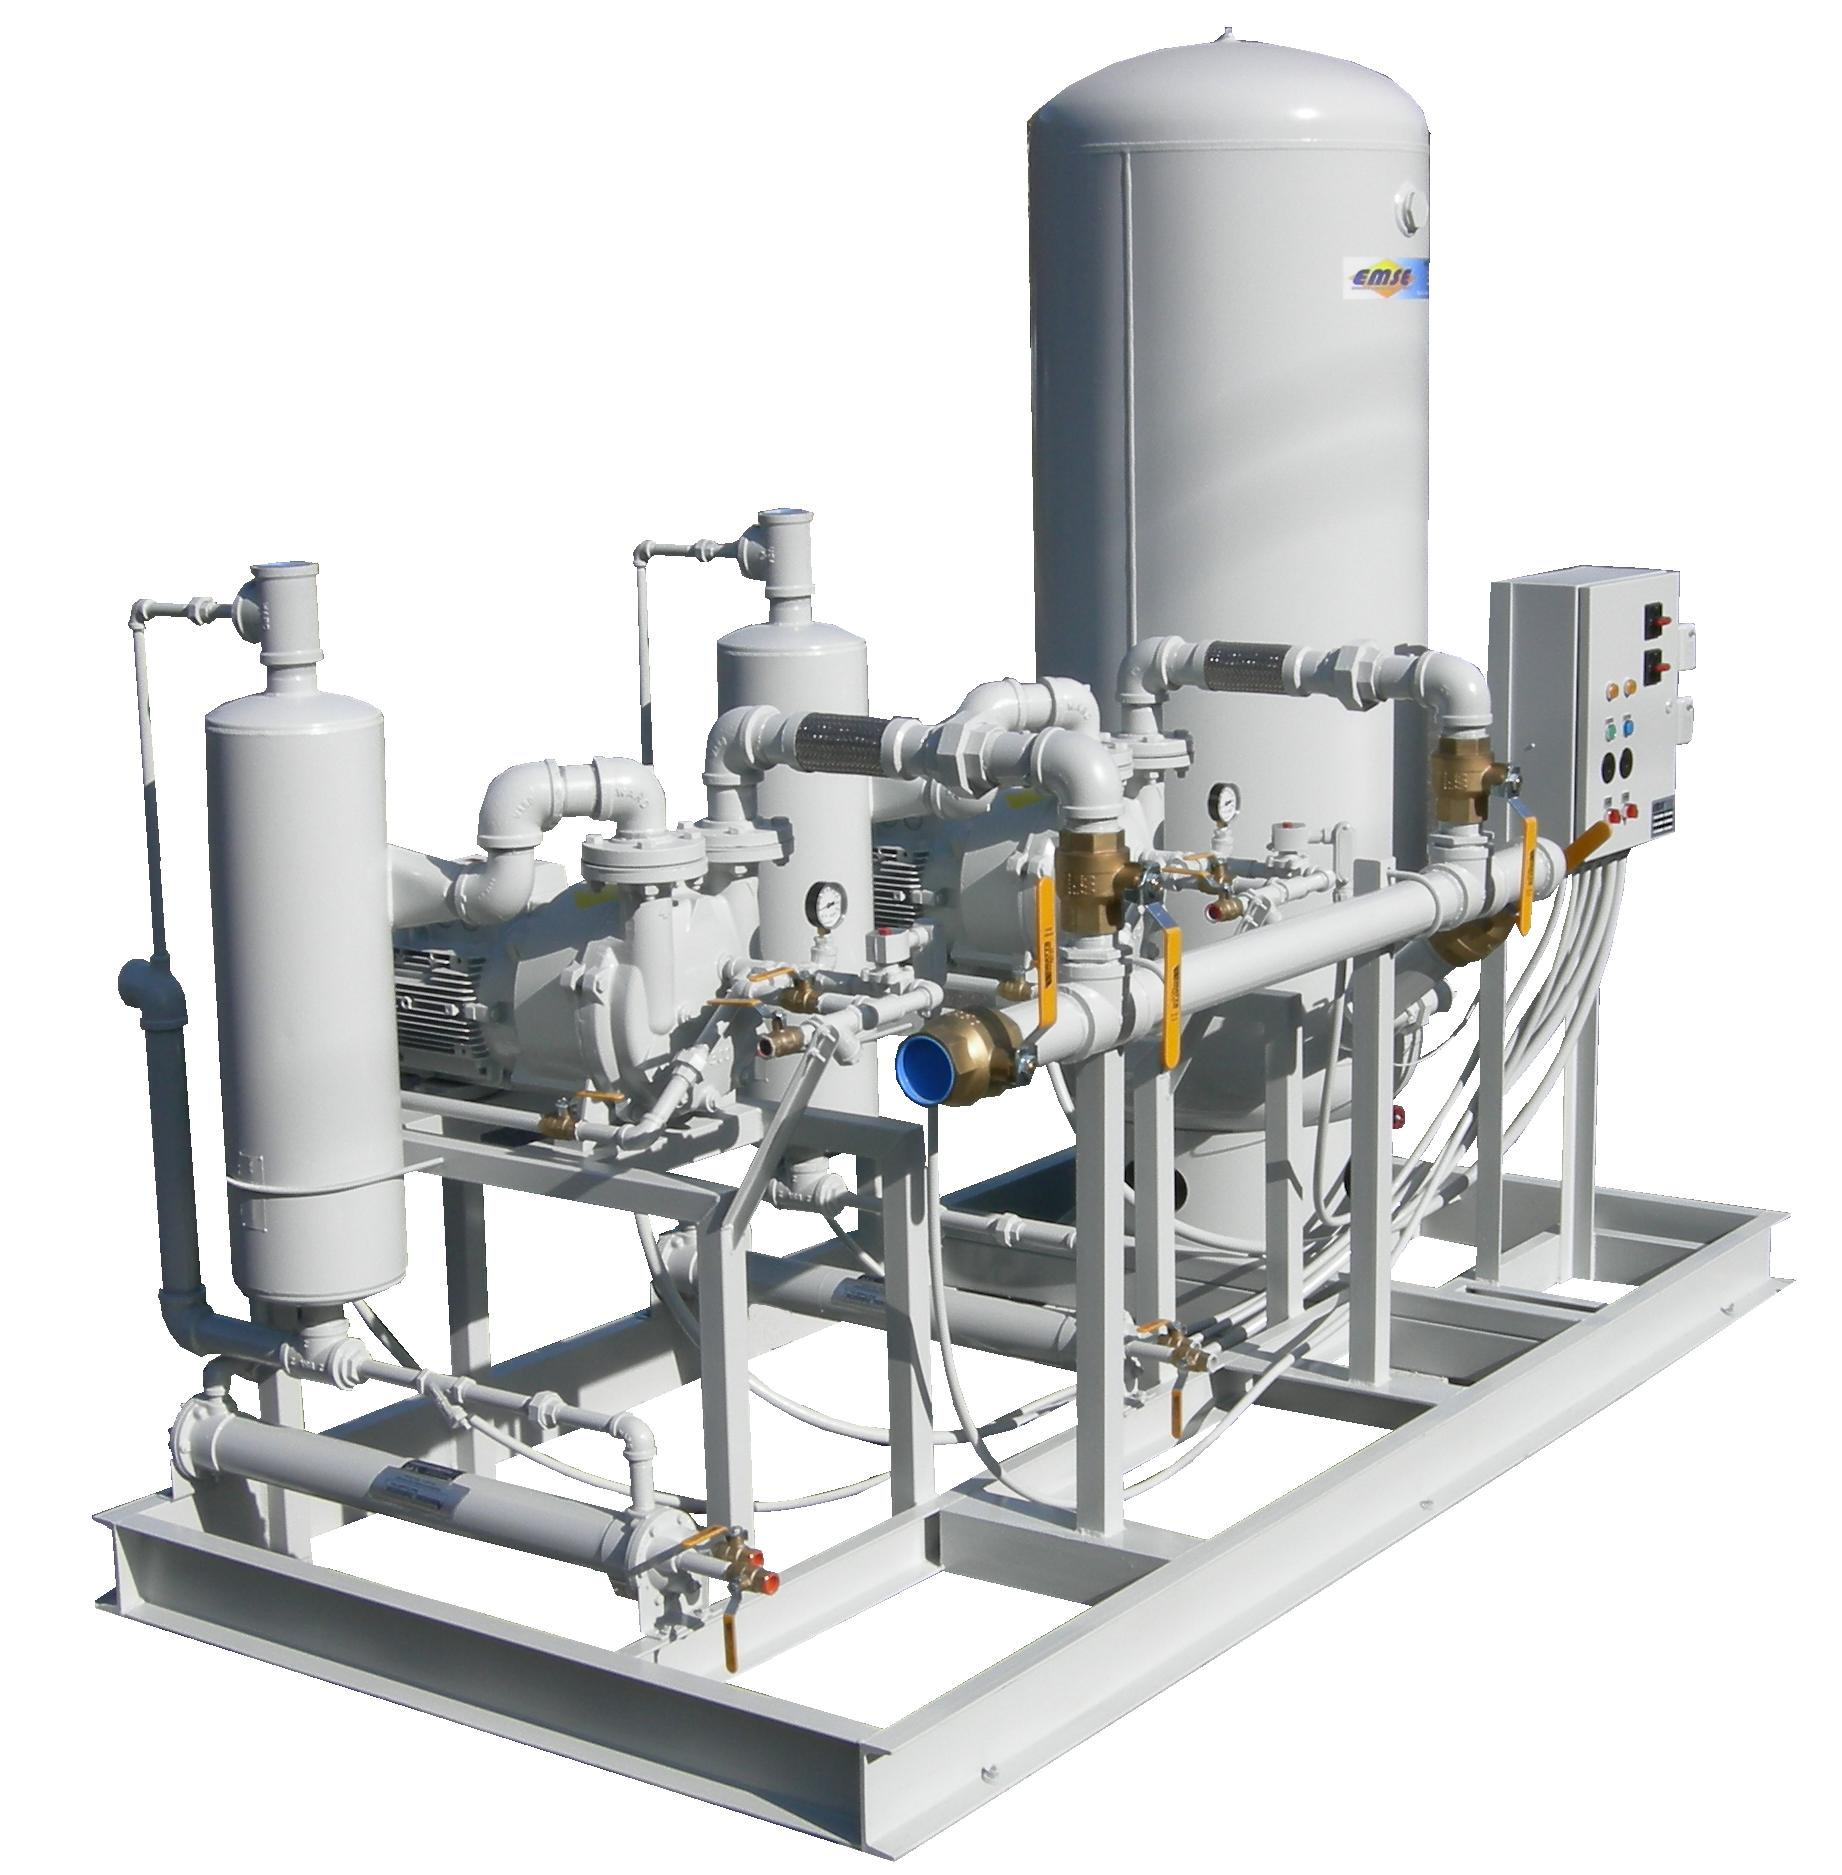 Vacuum Pump System Design : Medical vacuum systems and pumps emse corporation